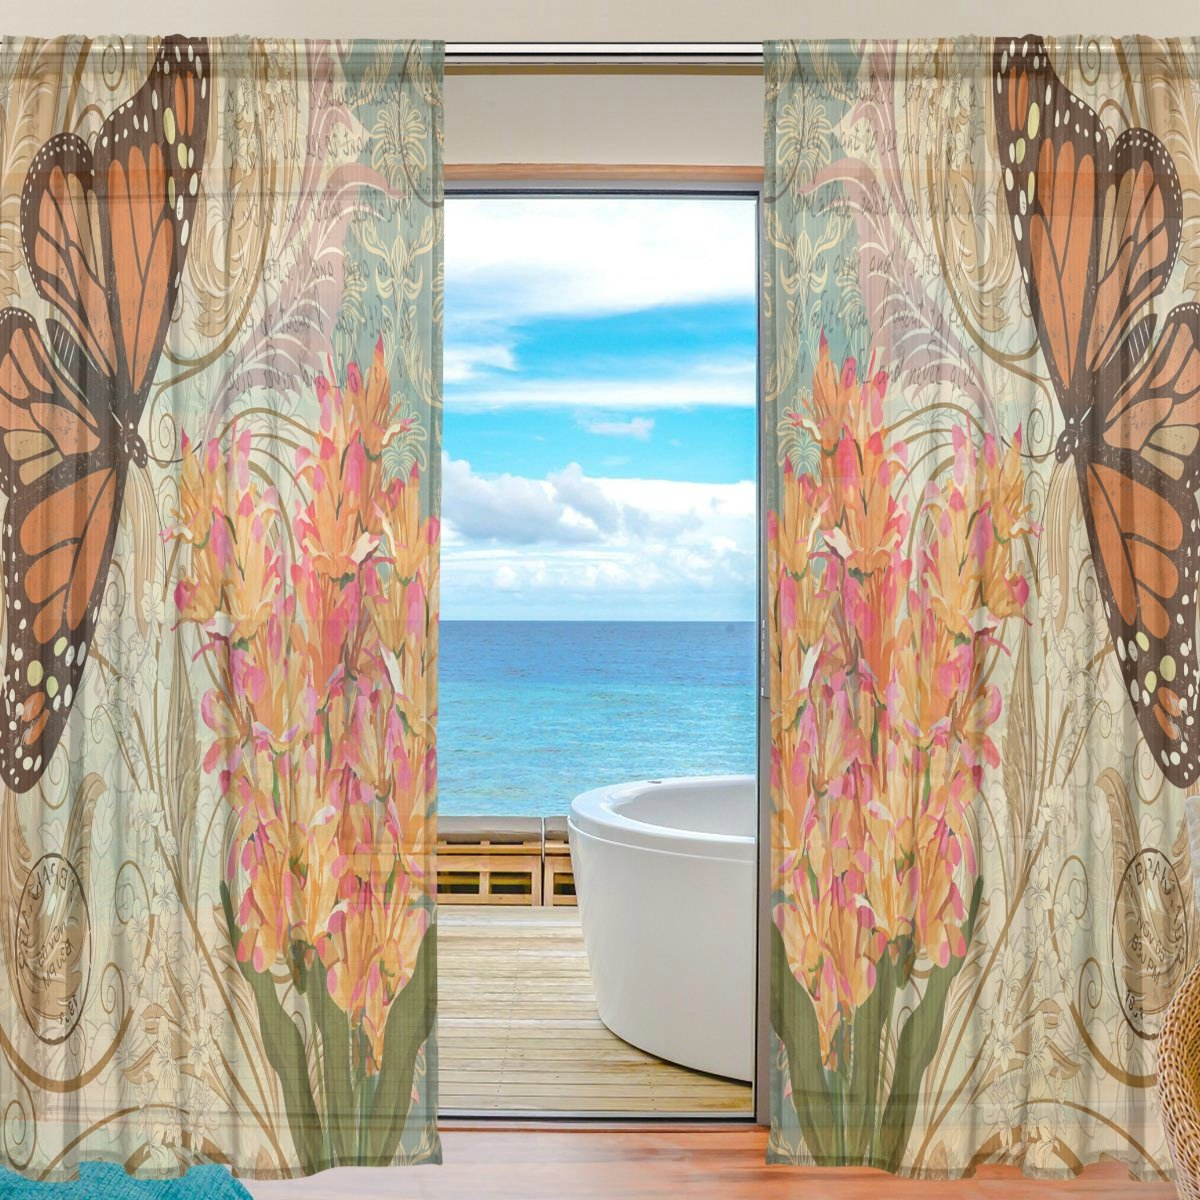 SEULIFE Window Sheer Curtain Vintage Flower Animal Butterfly Voile Curtain Drapes for Door Kitchen Living Room Bedroom 55x84 inches 2 Panels by SEULIFE